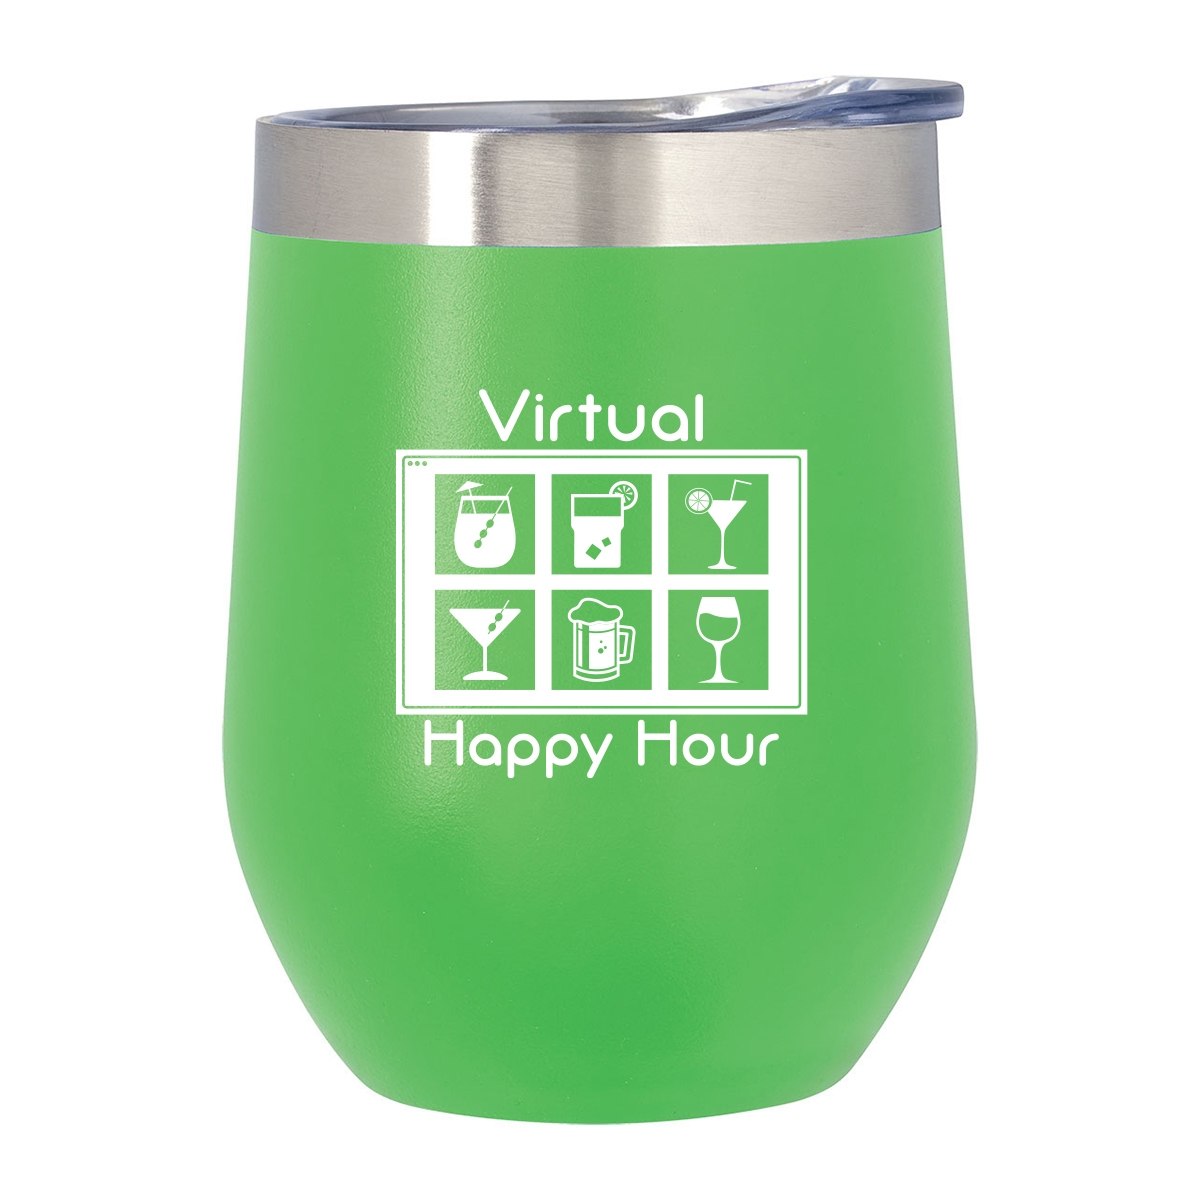 Stemless wine glass with funny quote